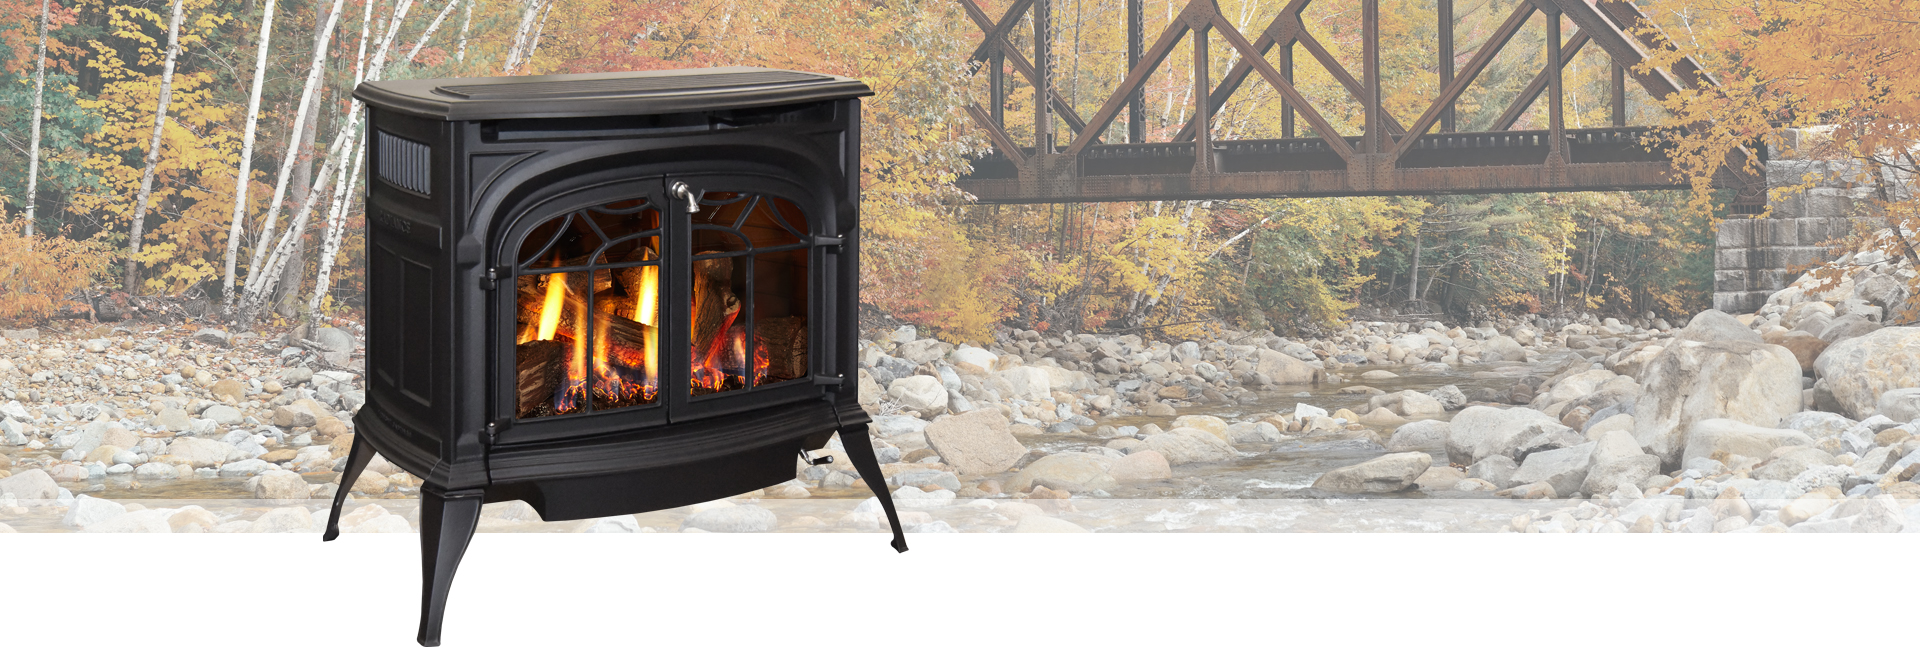 Vermont Castings Wood Stoves Choice Image Home Fixtures